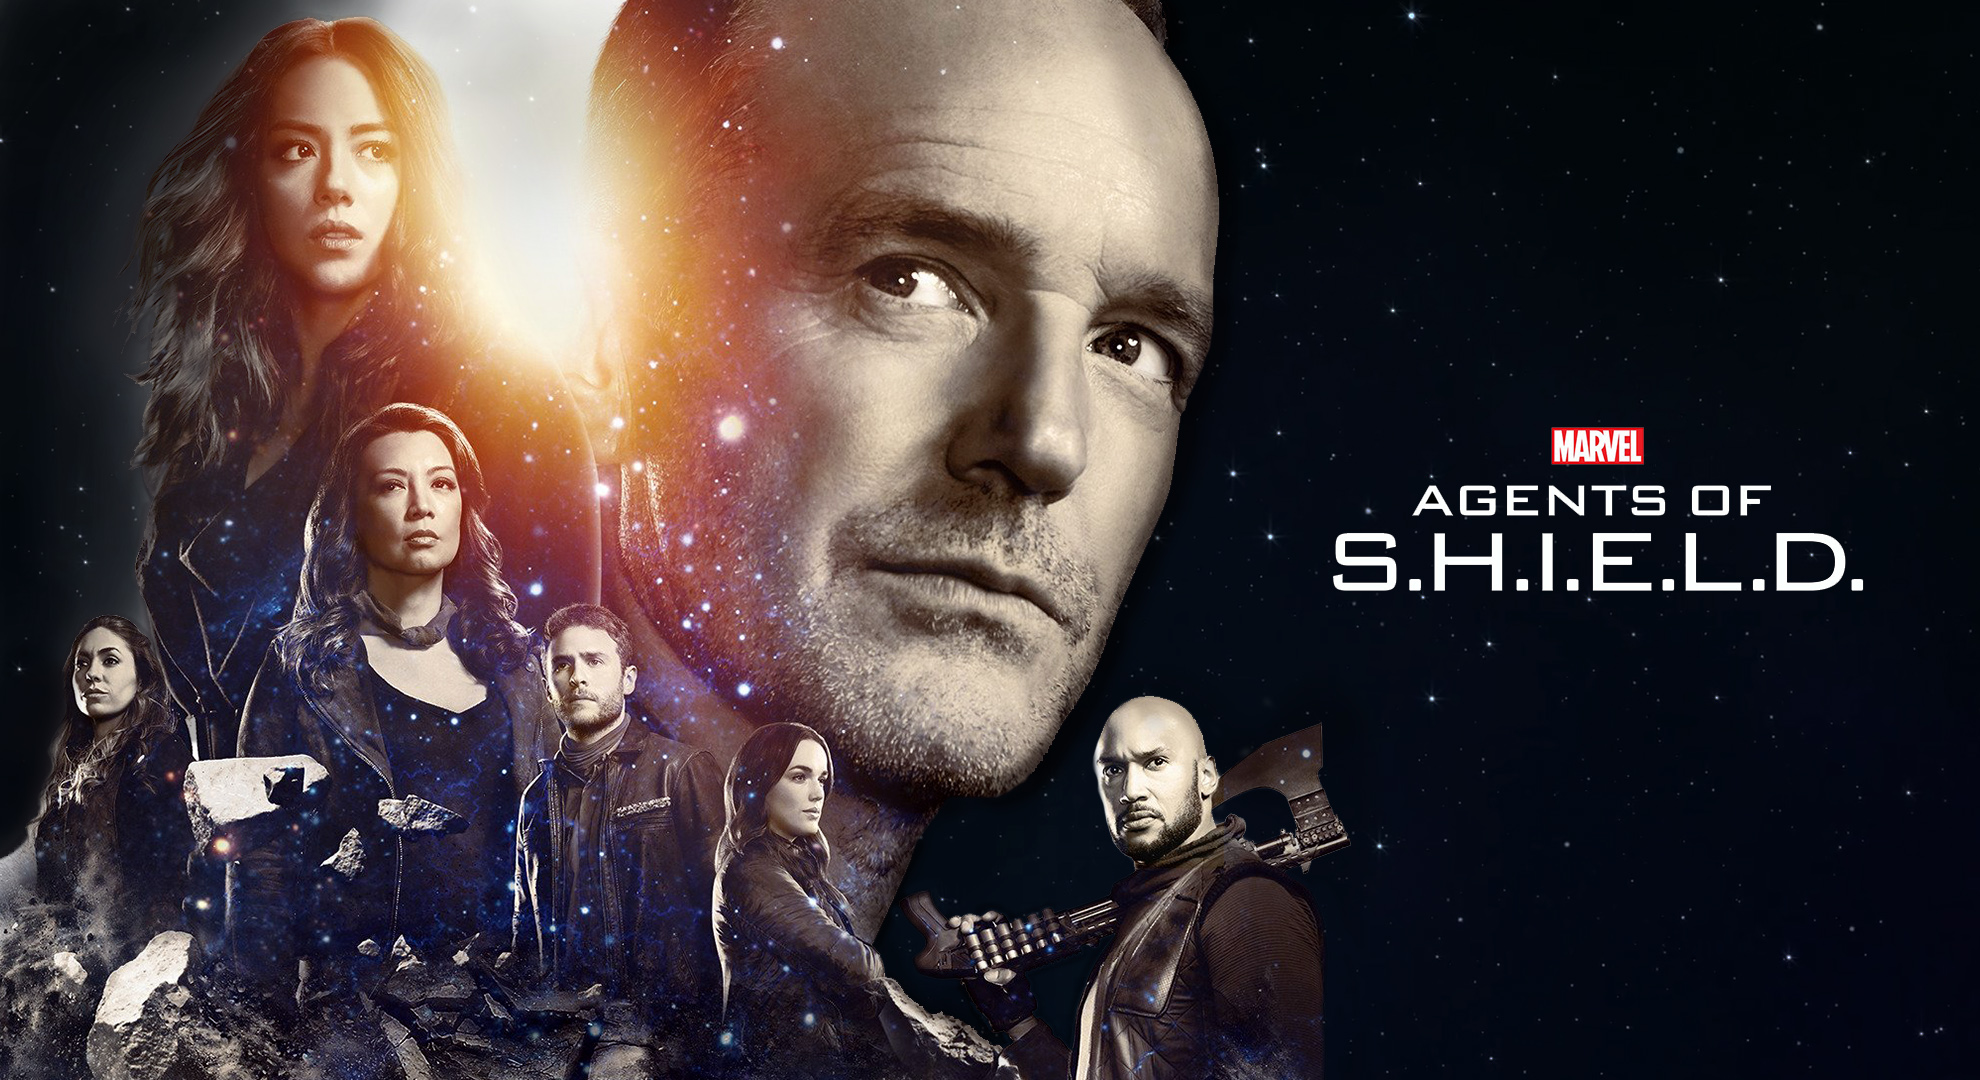 shield s05 full hd wallpaper and background image | 1980x1080 | id